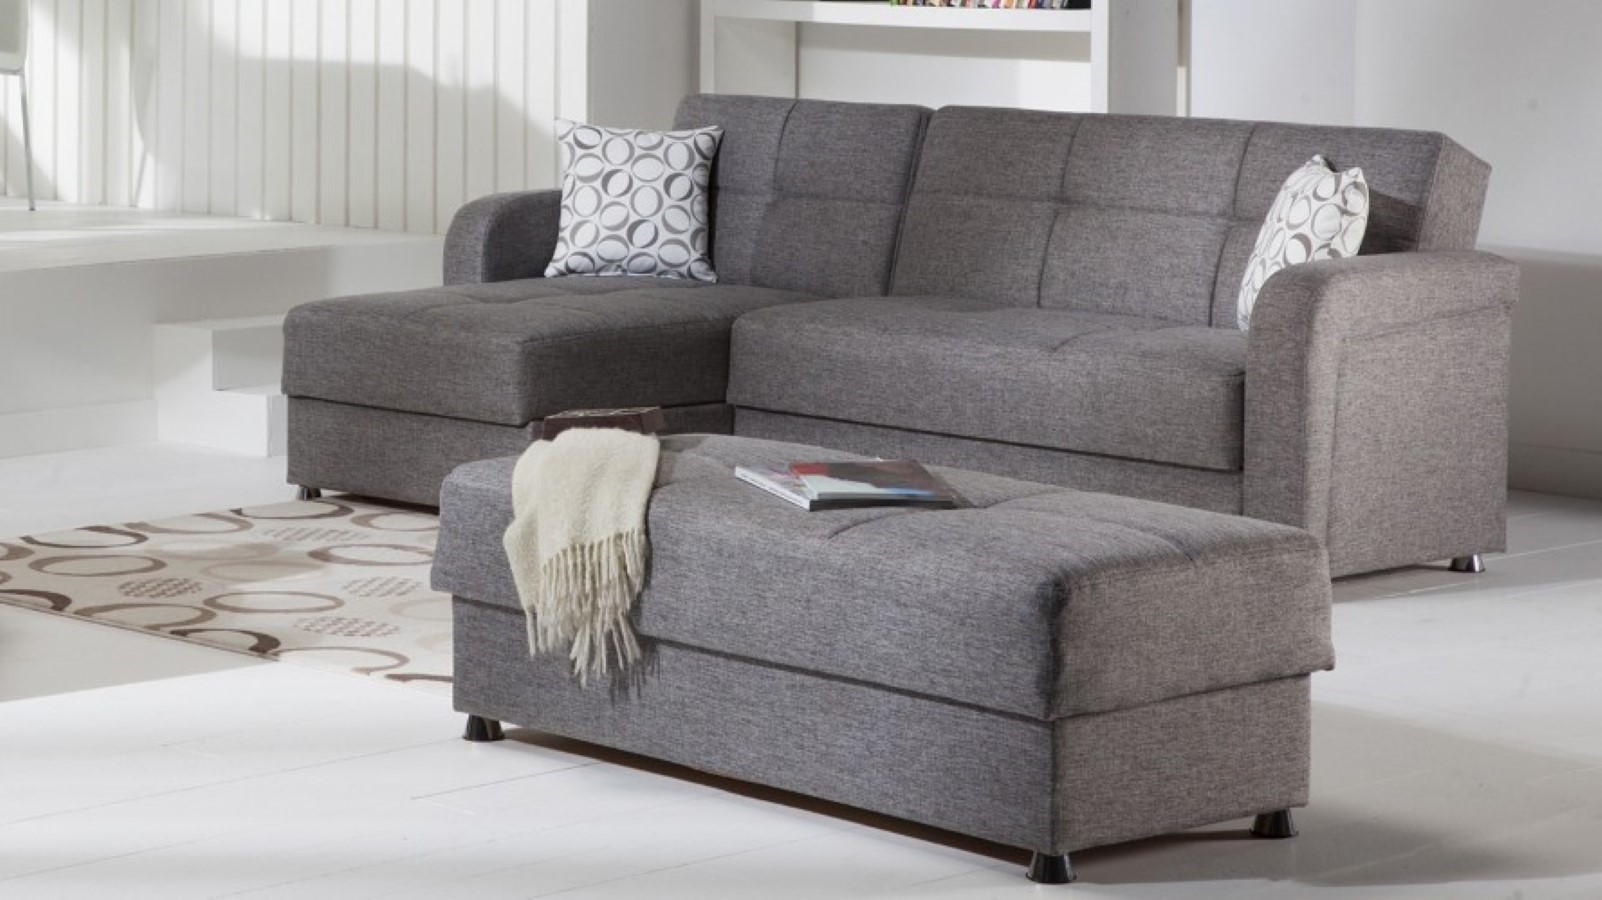 Gray sectional sofa with chaise luxurious furniture for Sectional furniture